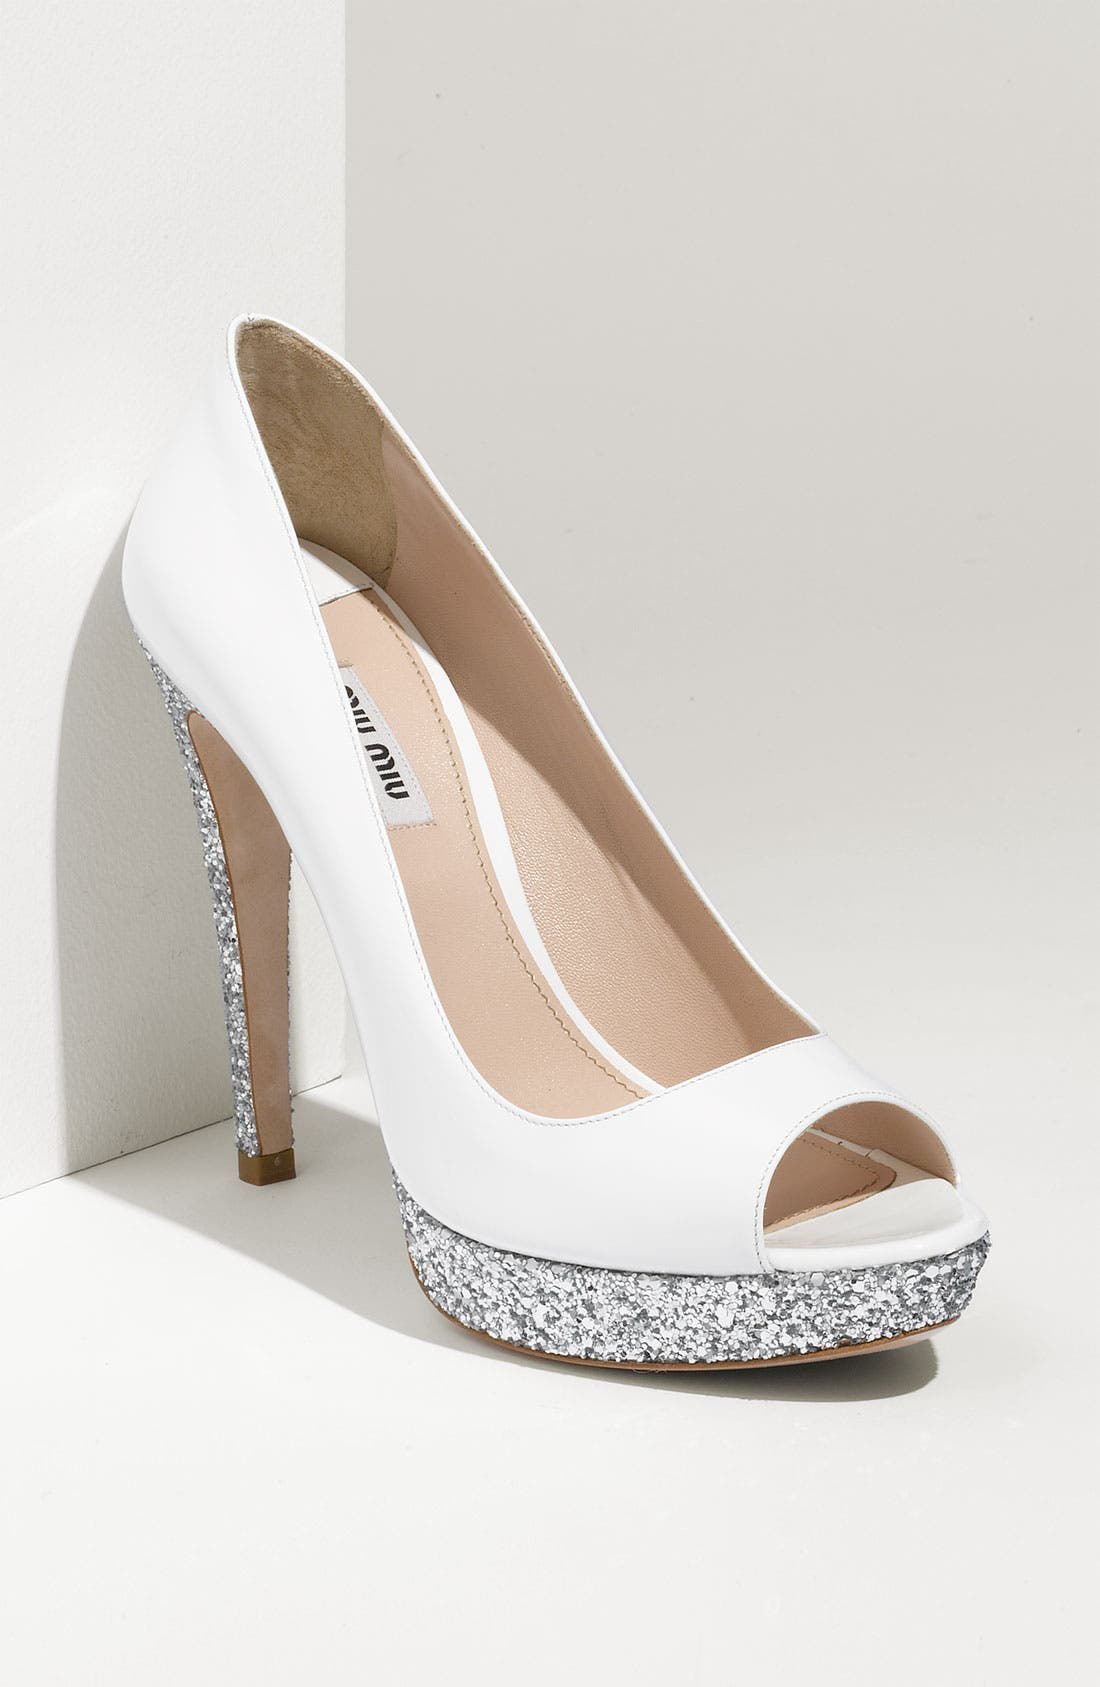 Alternate Image 1 Selected - Miu Miu Glitter Platform Pump